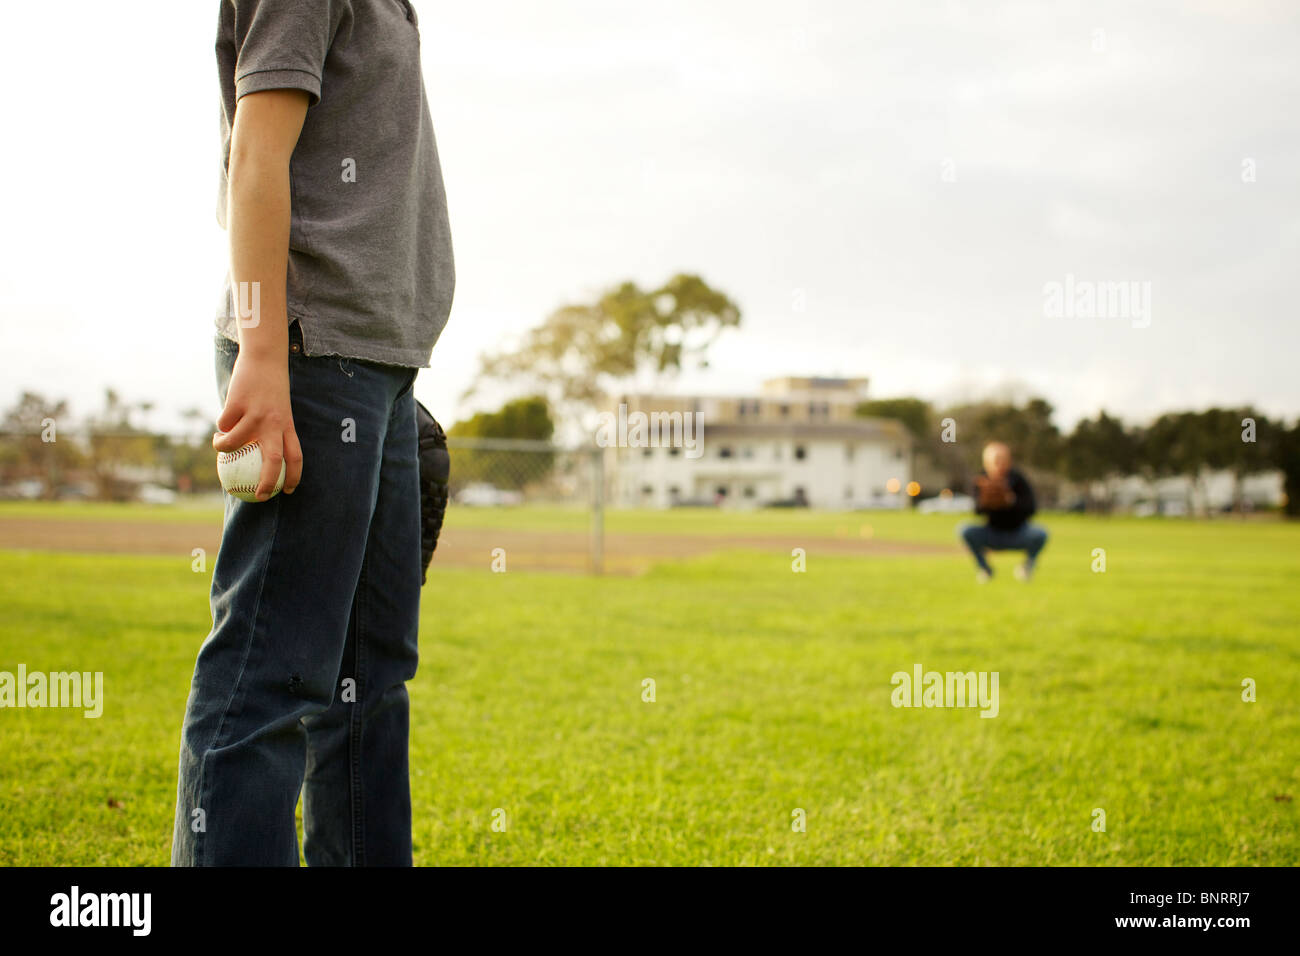 Boy gets ready to throw a baseball for his dad to catch at the park. - Stock Image